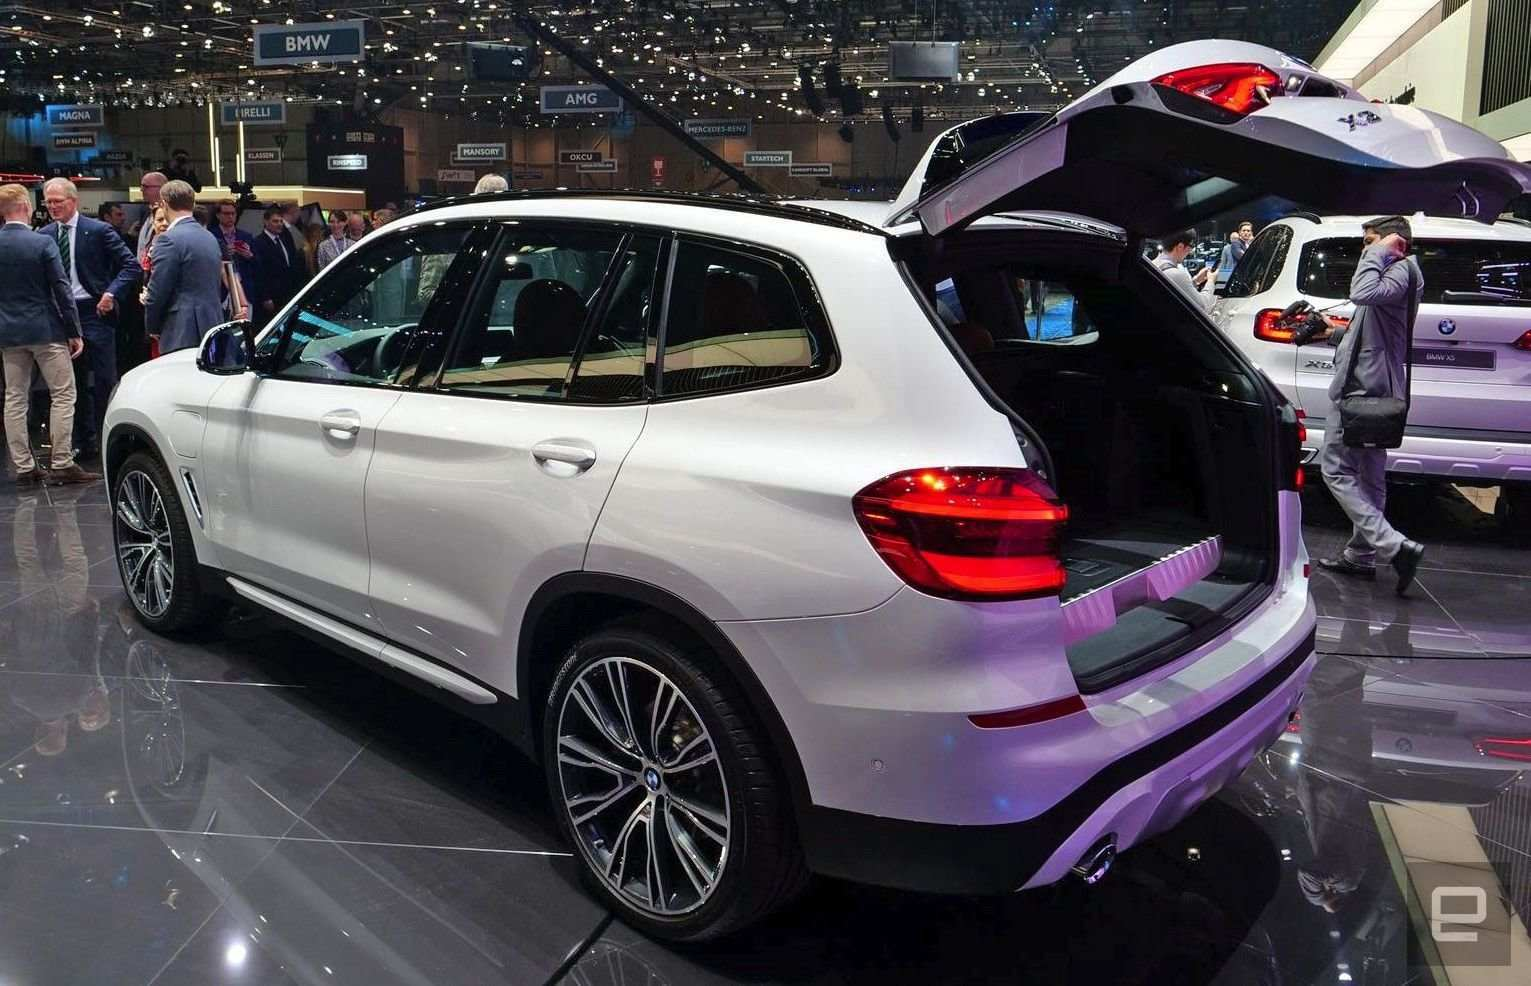 65 The Best 2019 BMW X3 Hybrid Performance And New Engine